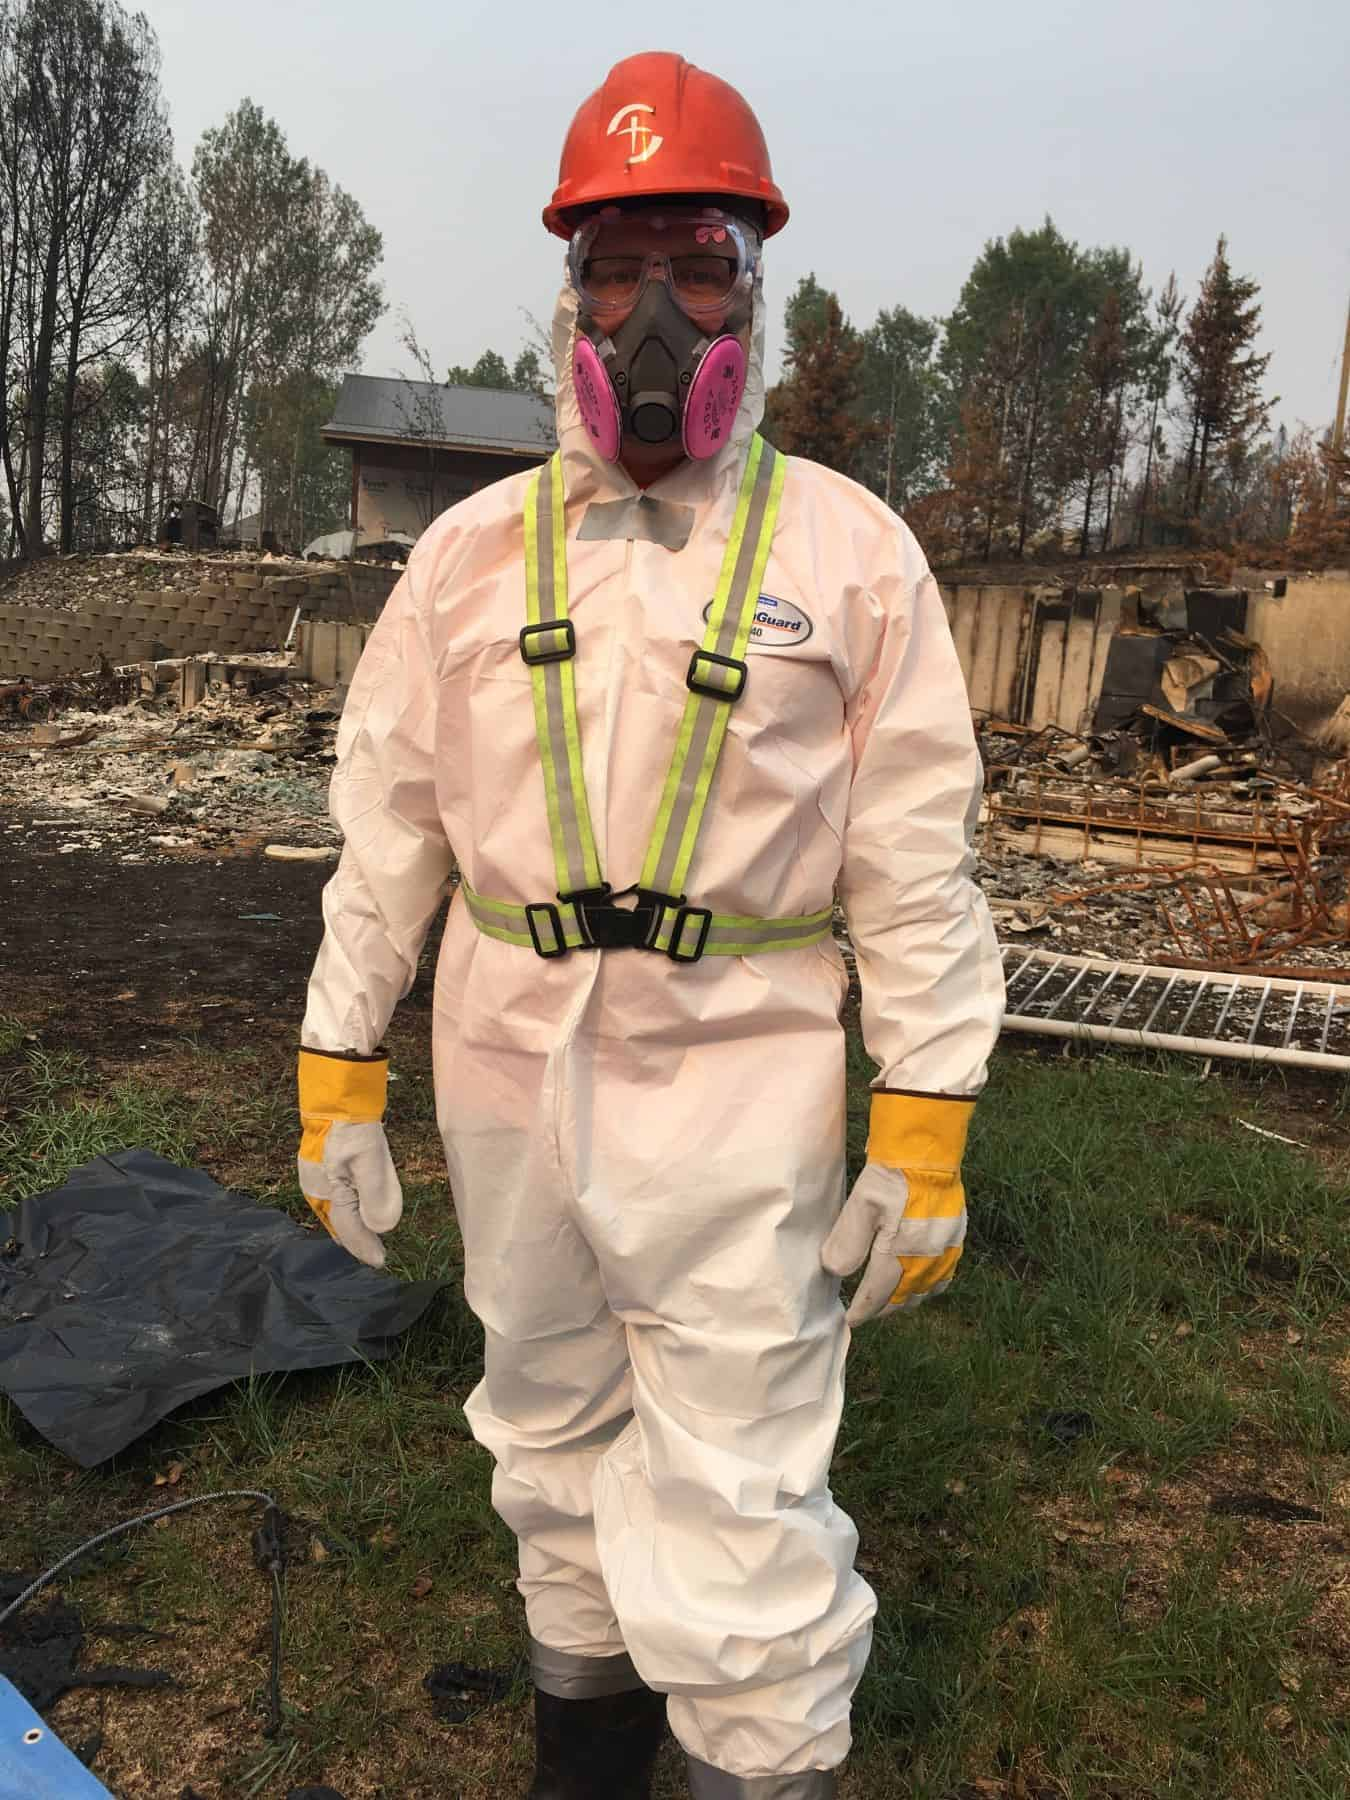 Jay McAlister, lead pastor of Calvary Church in Williams Lake, BC, wore Samaritan's Purse protective equipment as he joined volunteers helping residents who lost their homes and possessions to a wildfire.